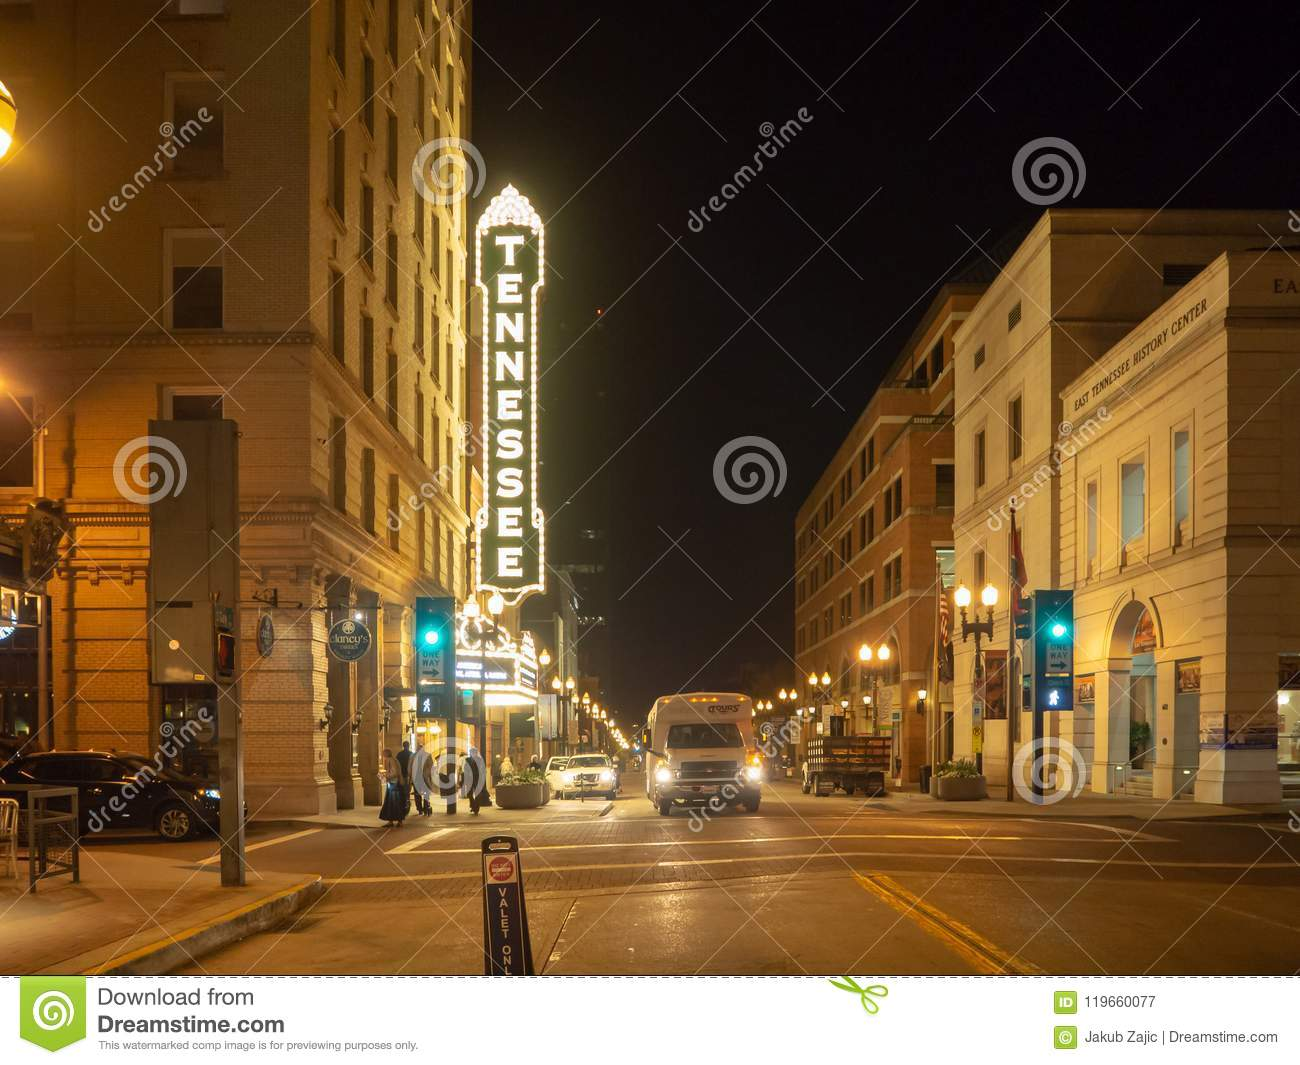 Gay Street, Knoxville, Tennessee, United States of America: [Night life in the center of Knoxville]